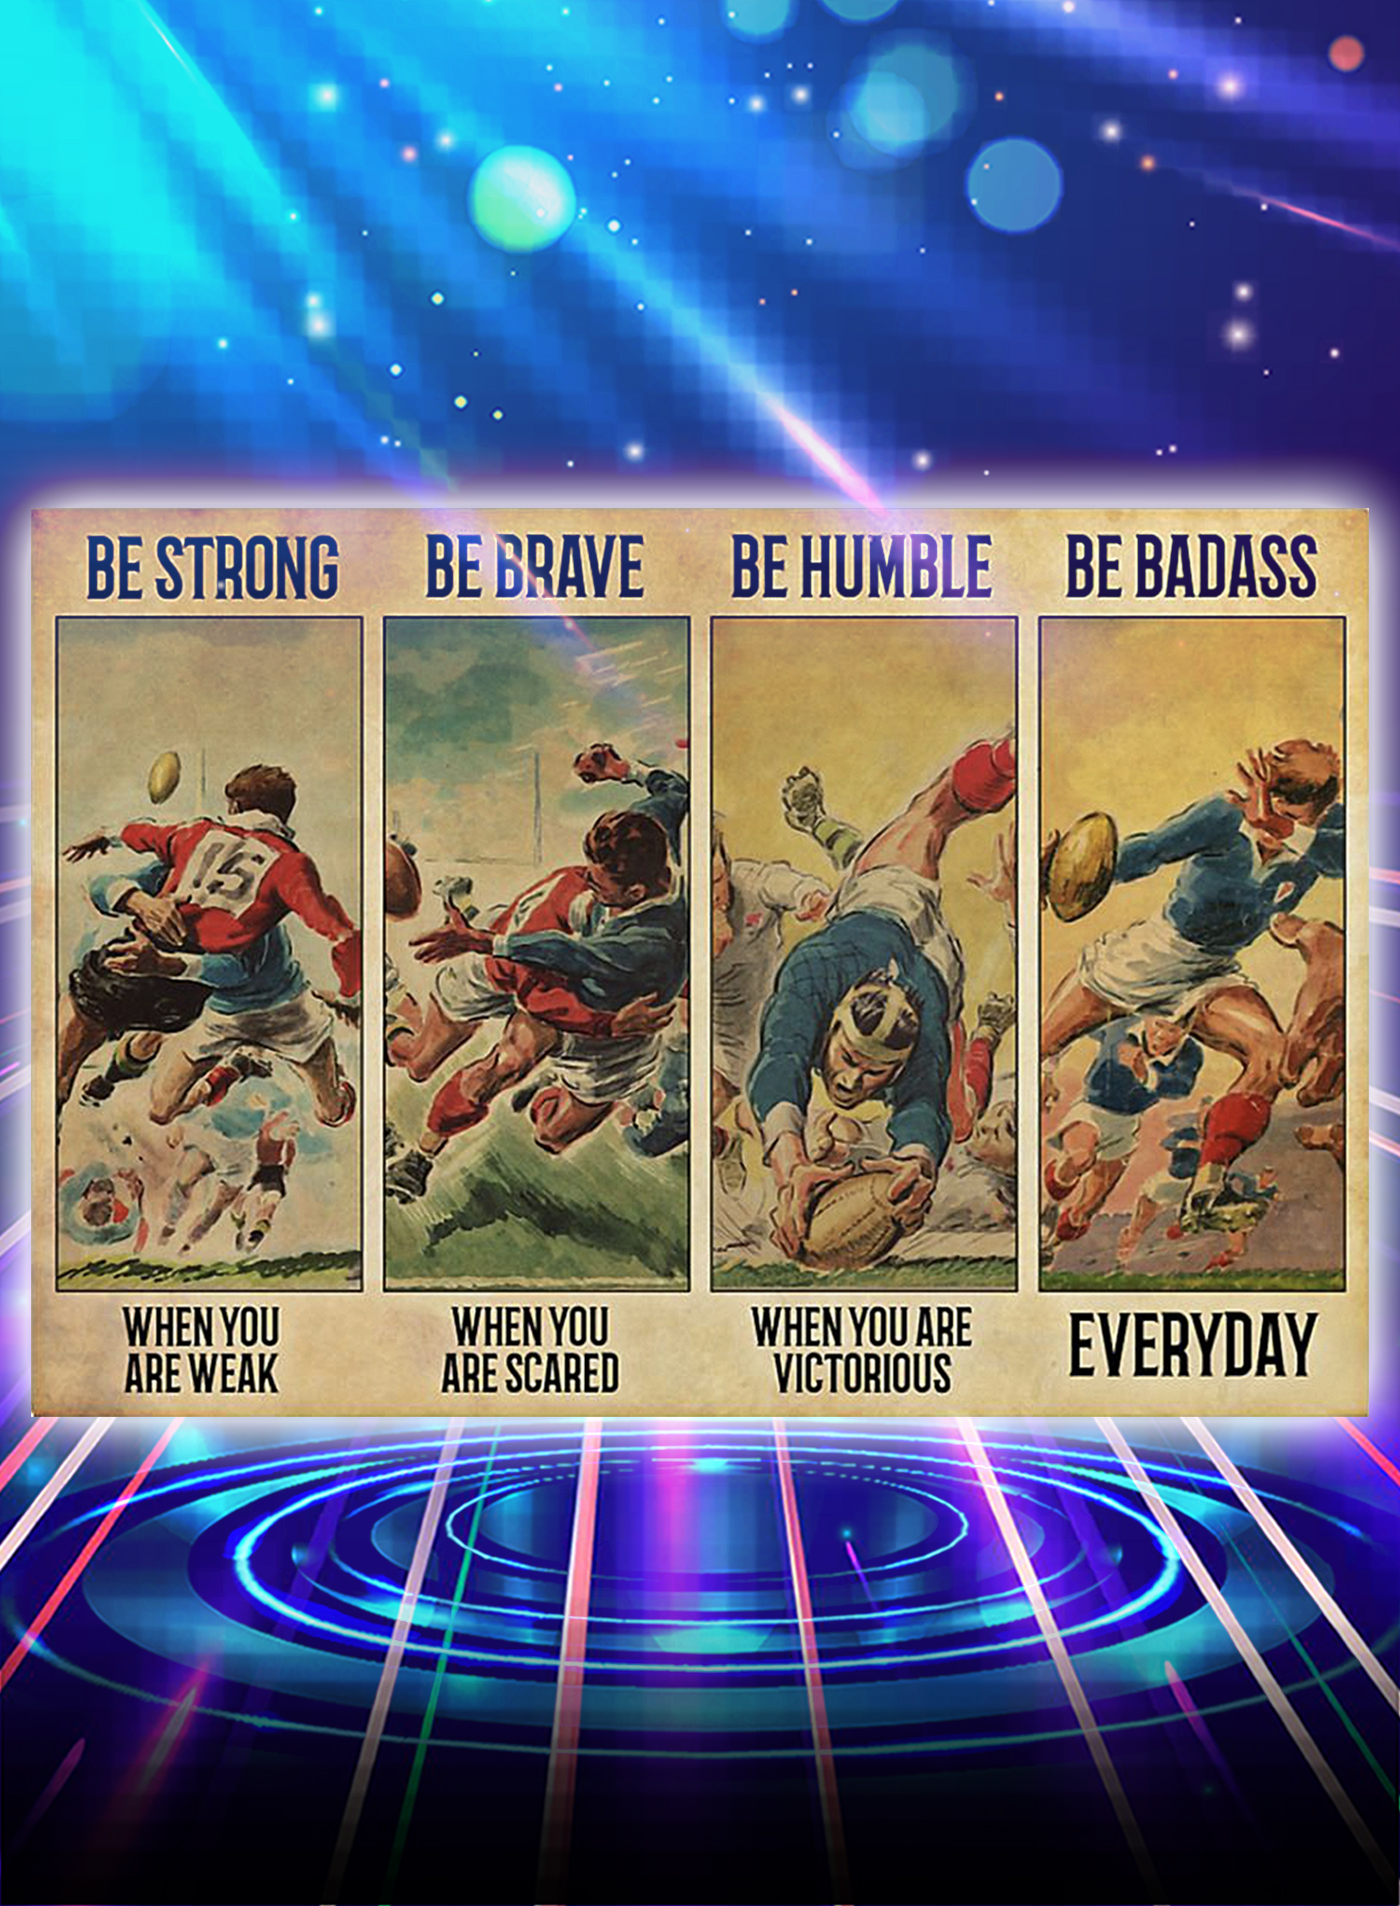 Rugby be strong be brave be humble be badass poster - A1